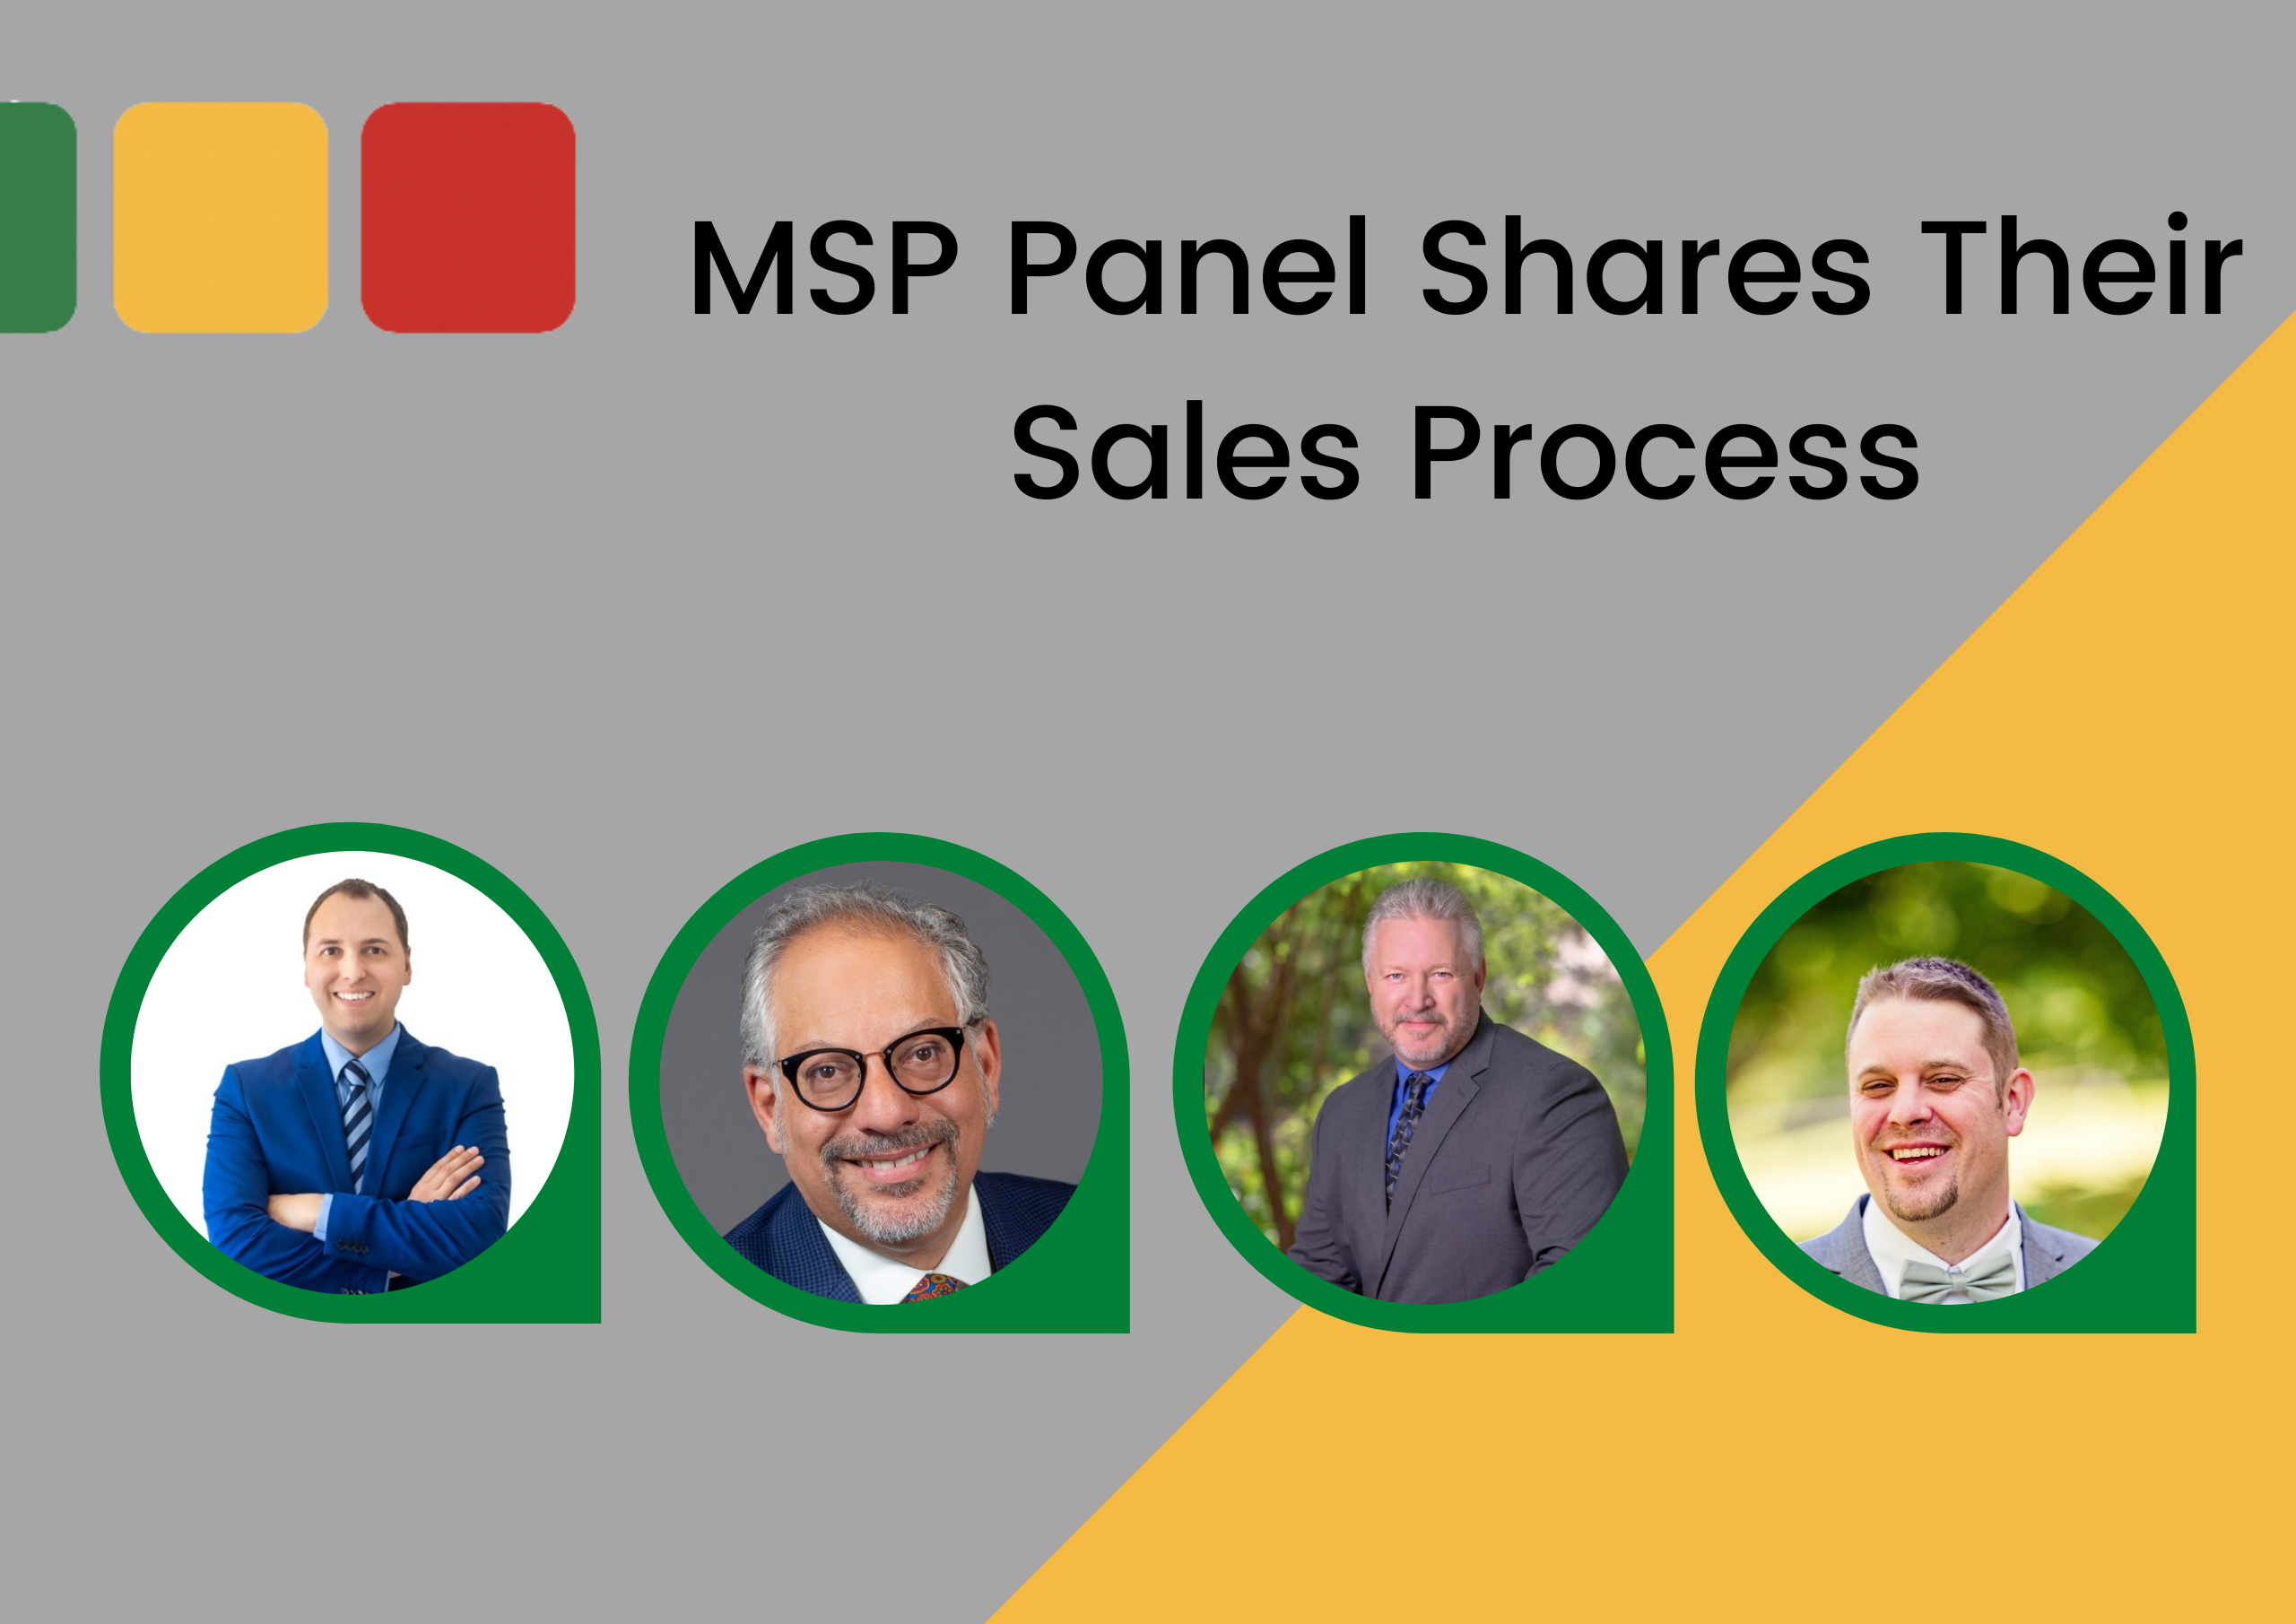 MSP-Panel-Shares-Their-Sales-Process-2560x1811-1